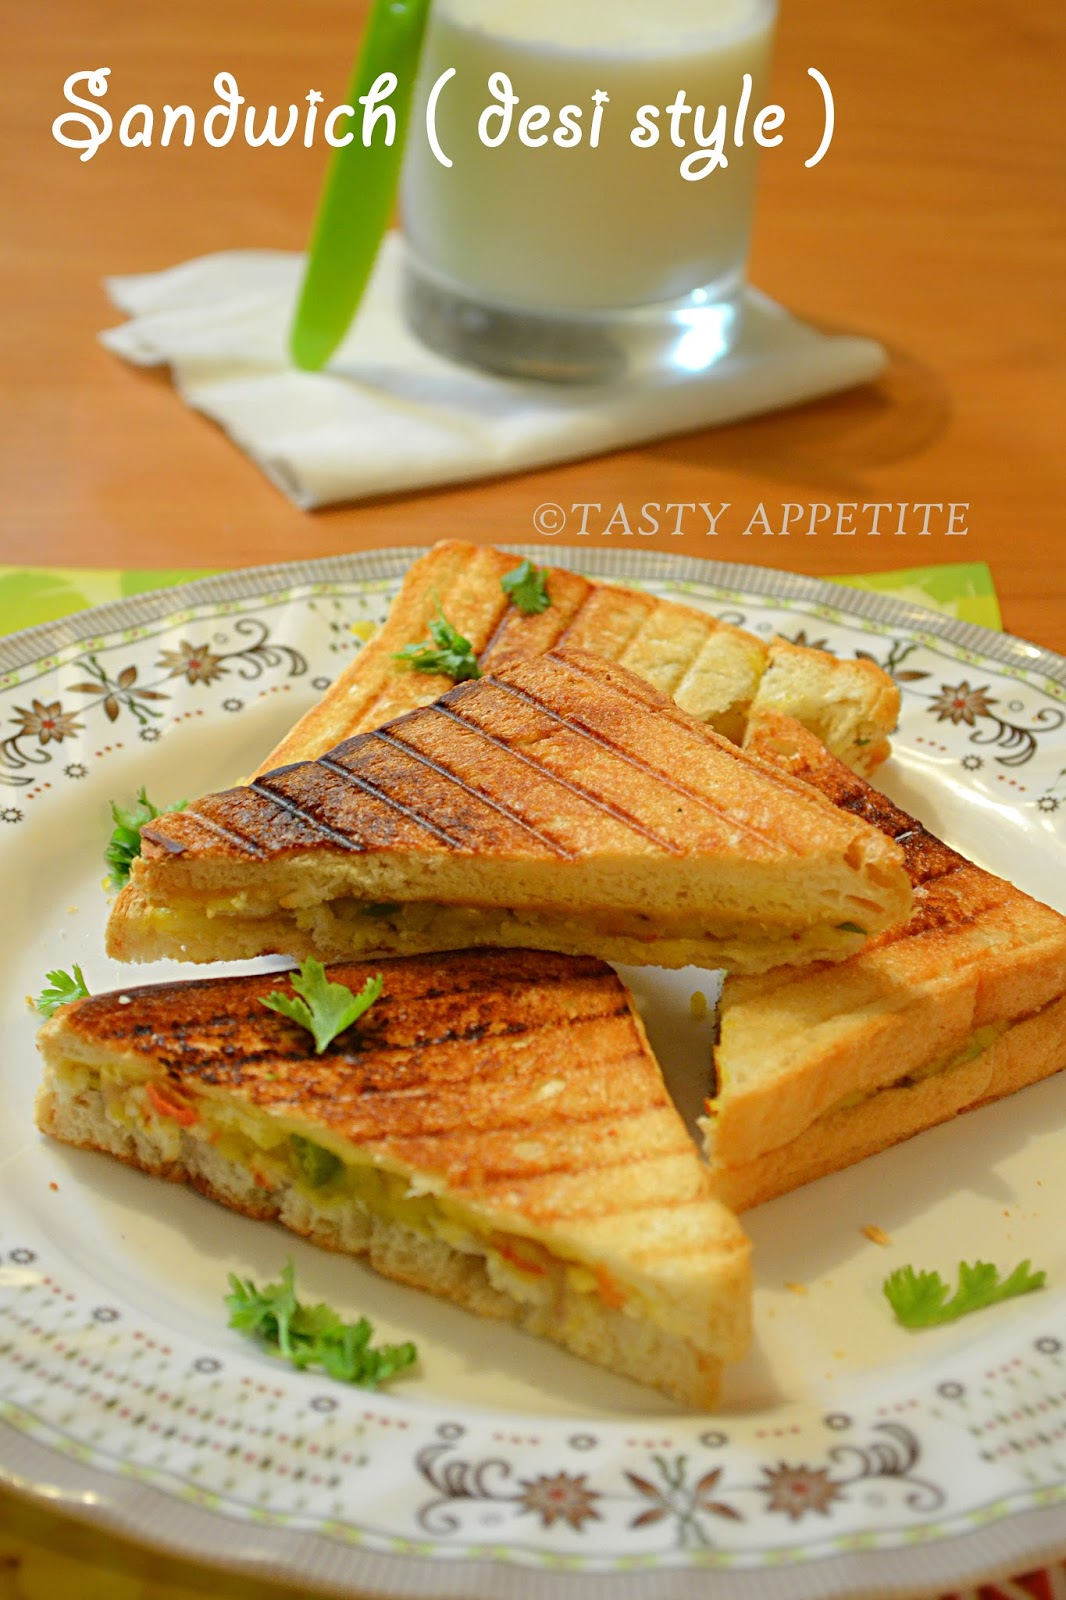 Chicken sandwich recipes indian style